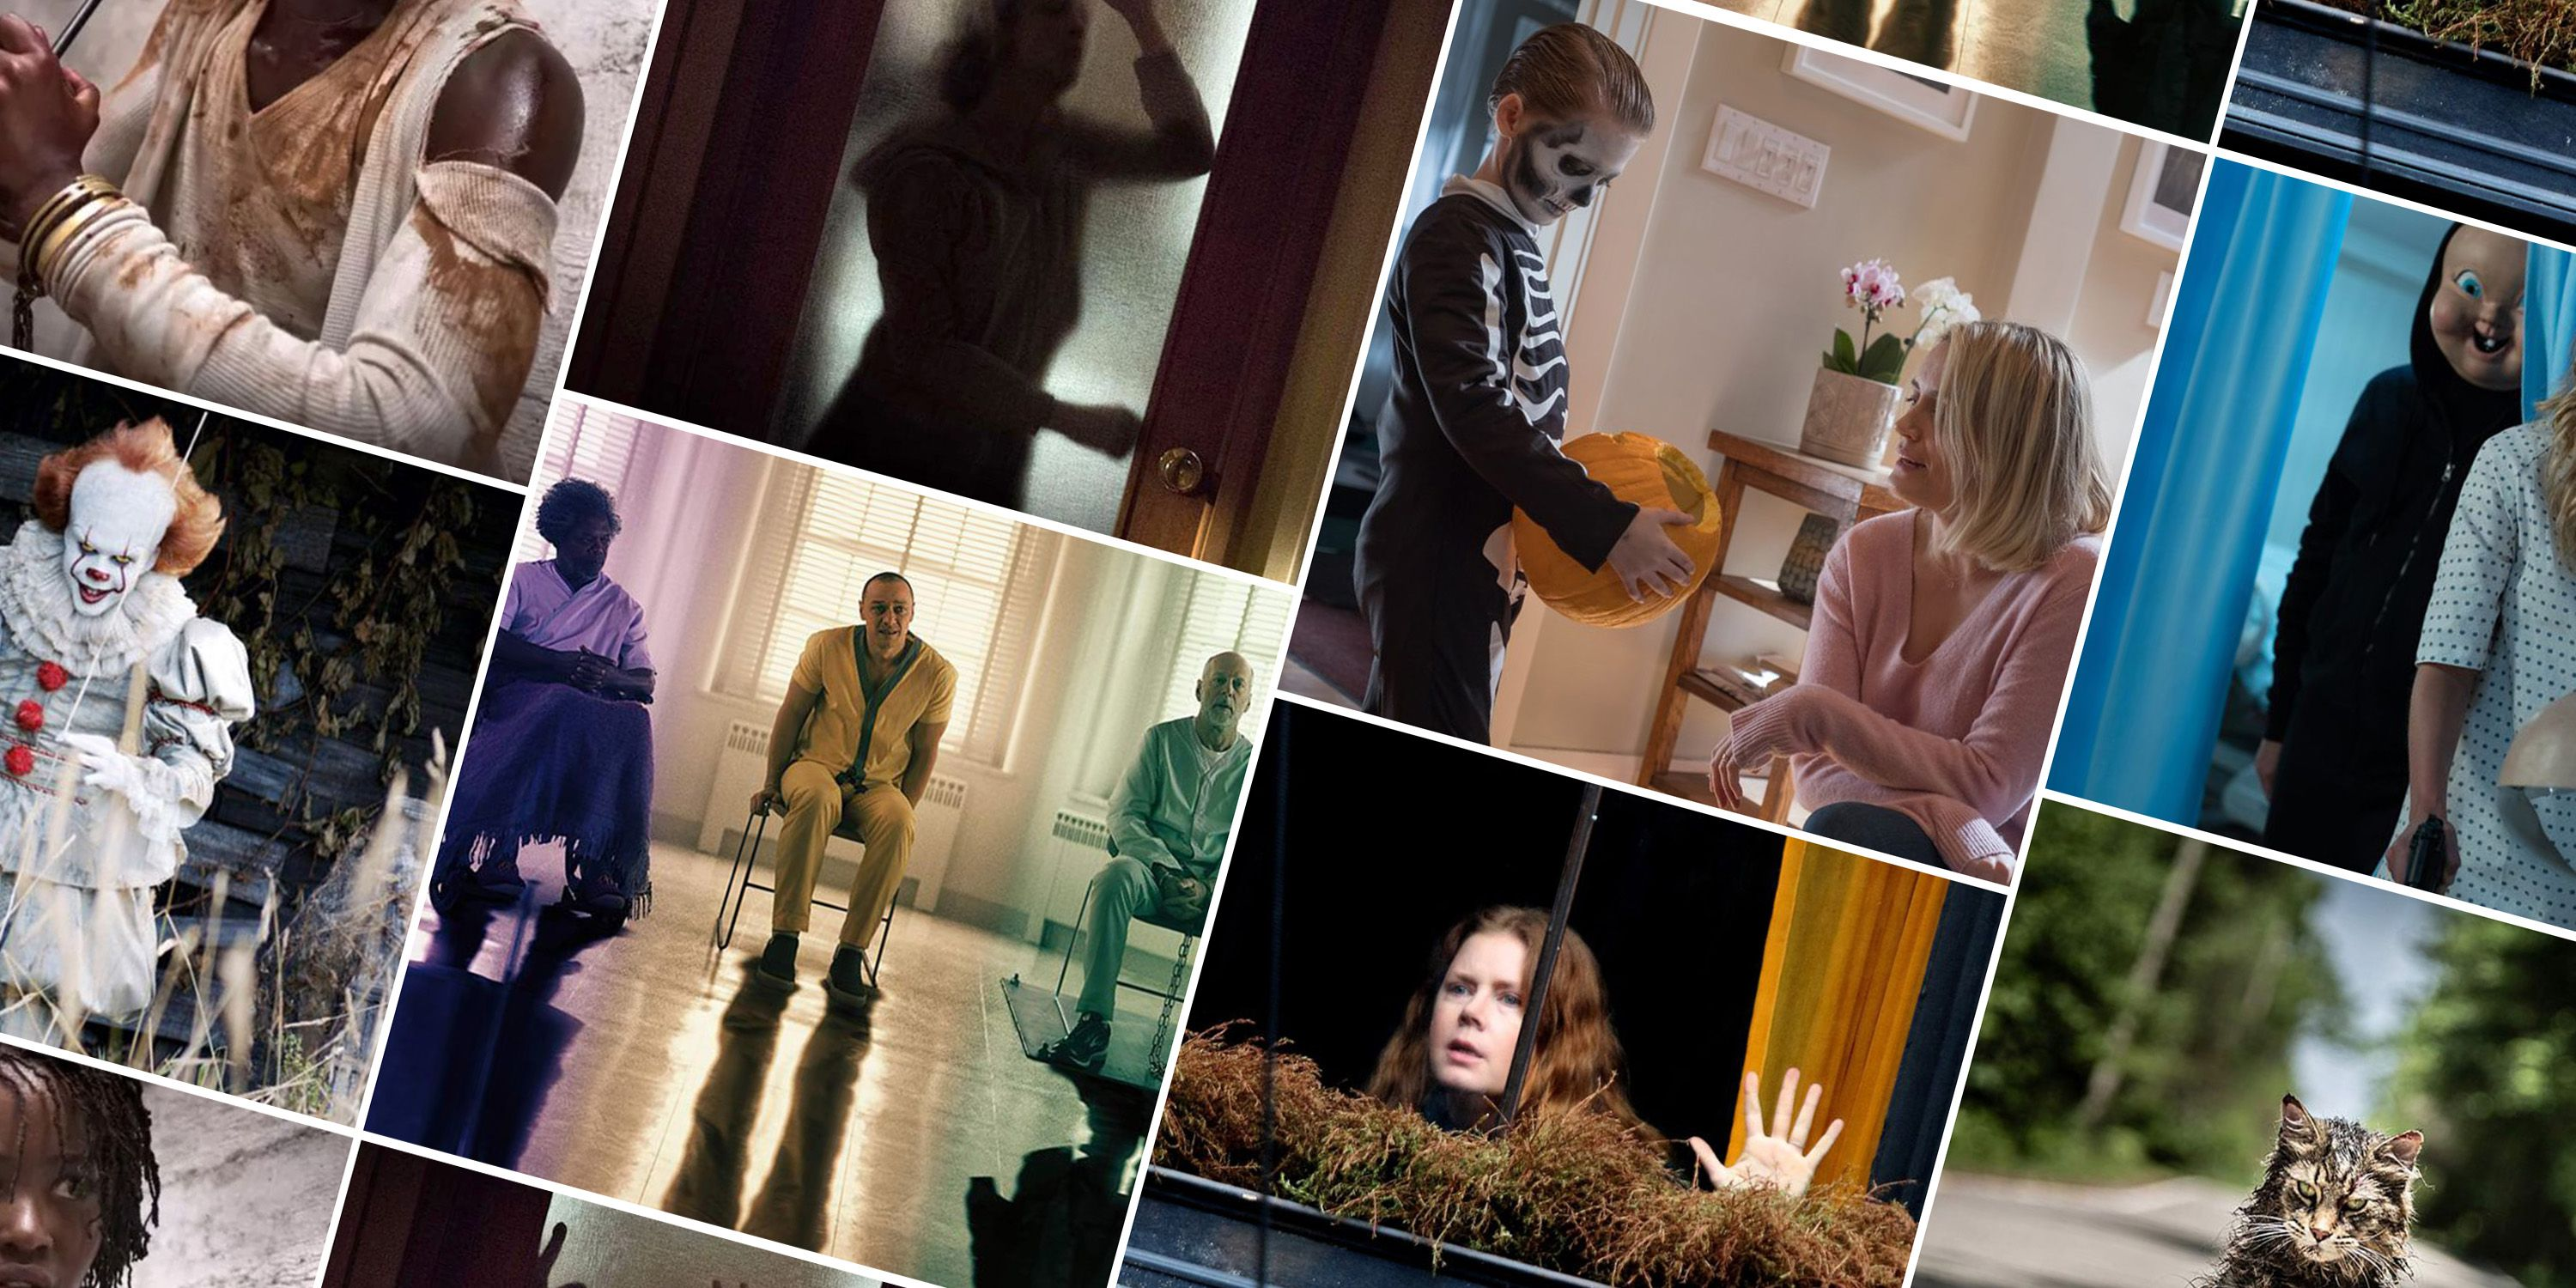 19 Horror Movies and Thrillers You Need to Watch in 2019